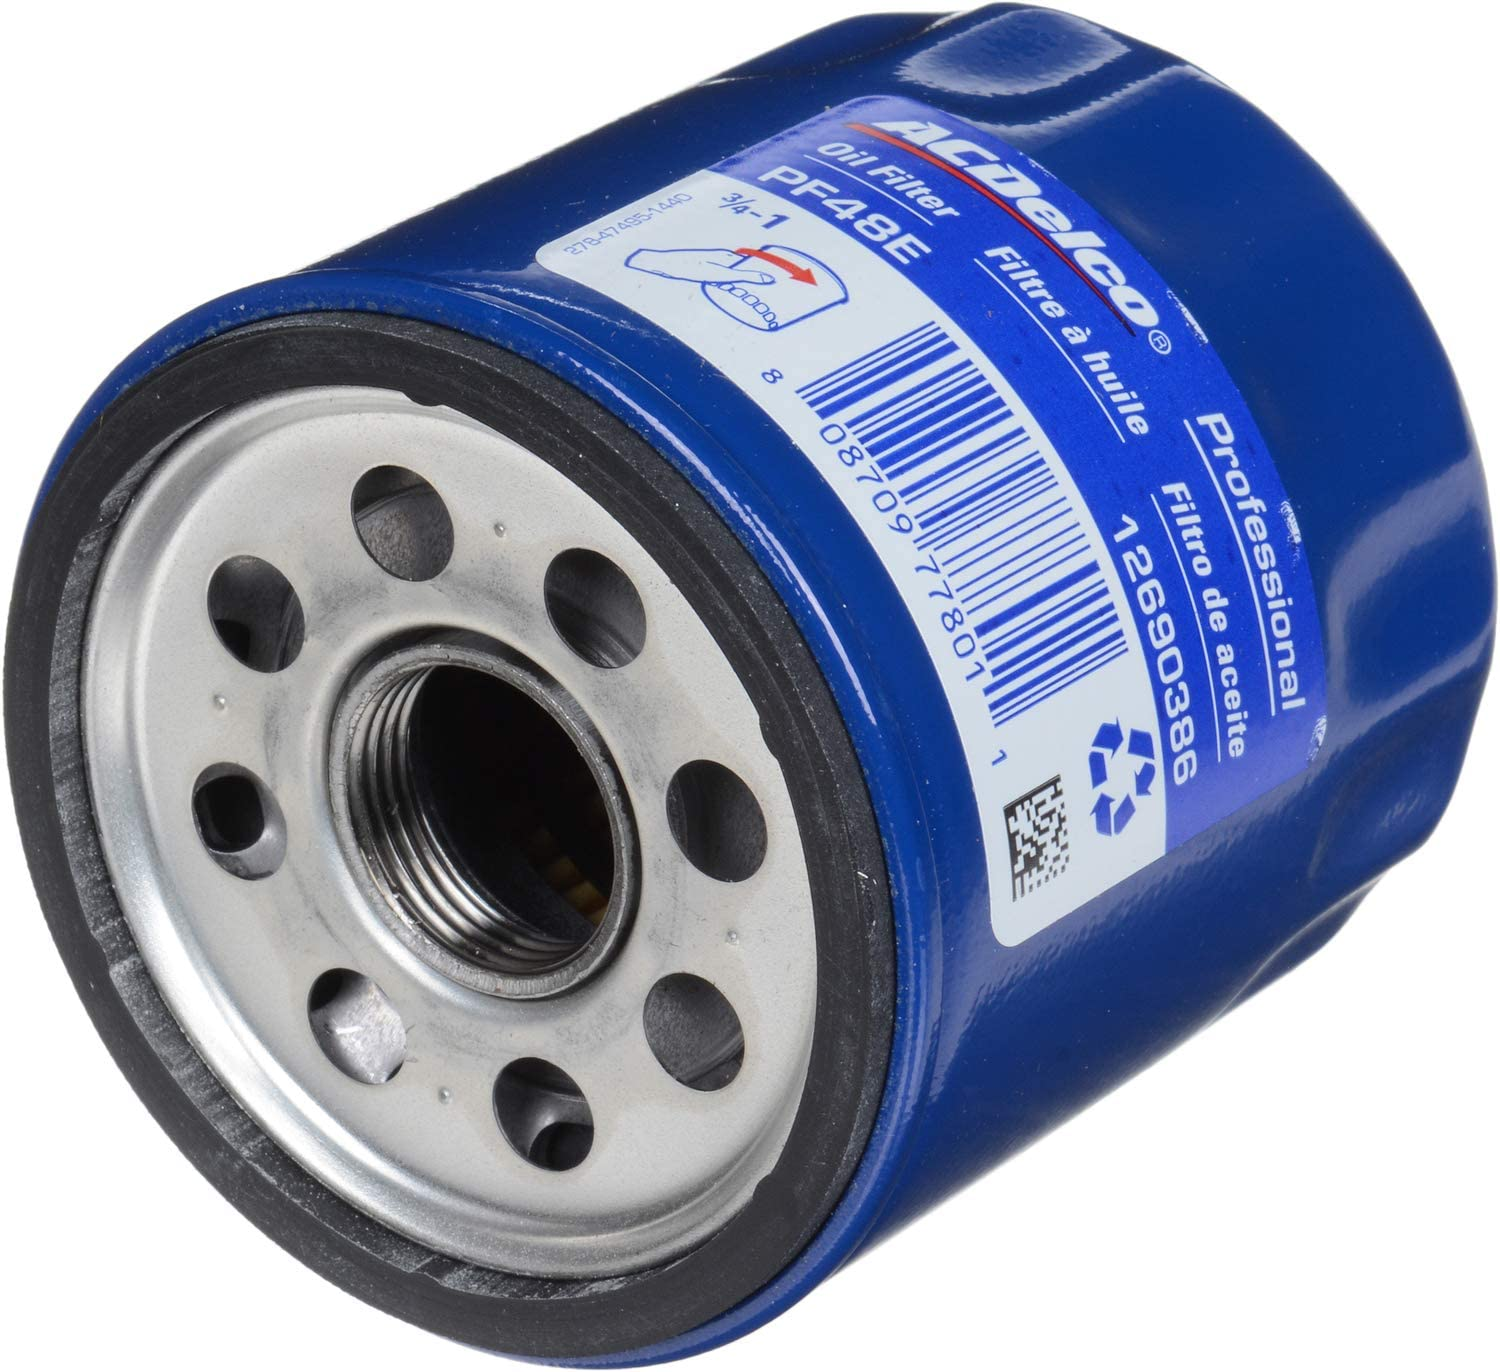 Engine Oil Filter ACDelco Pro PF48E OEM 12690386 Genuine Quality Replacement